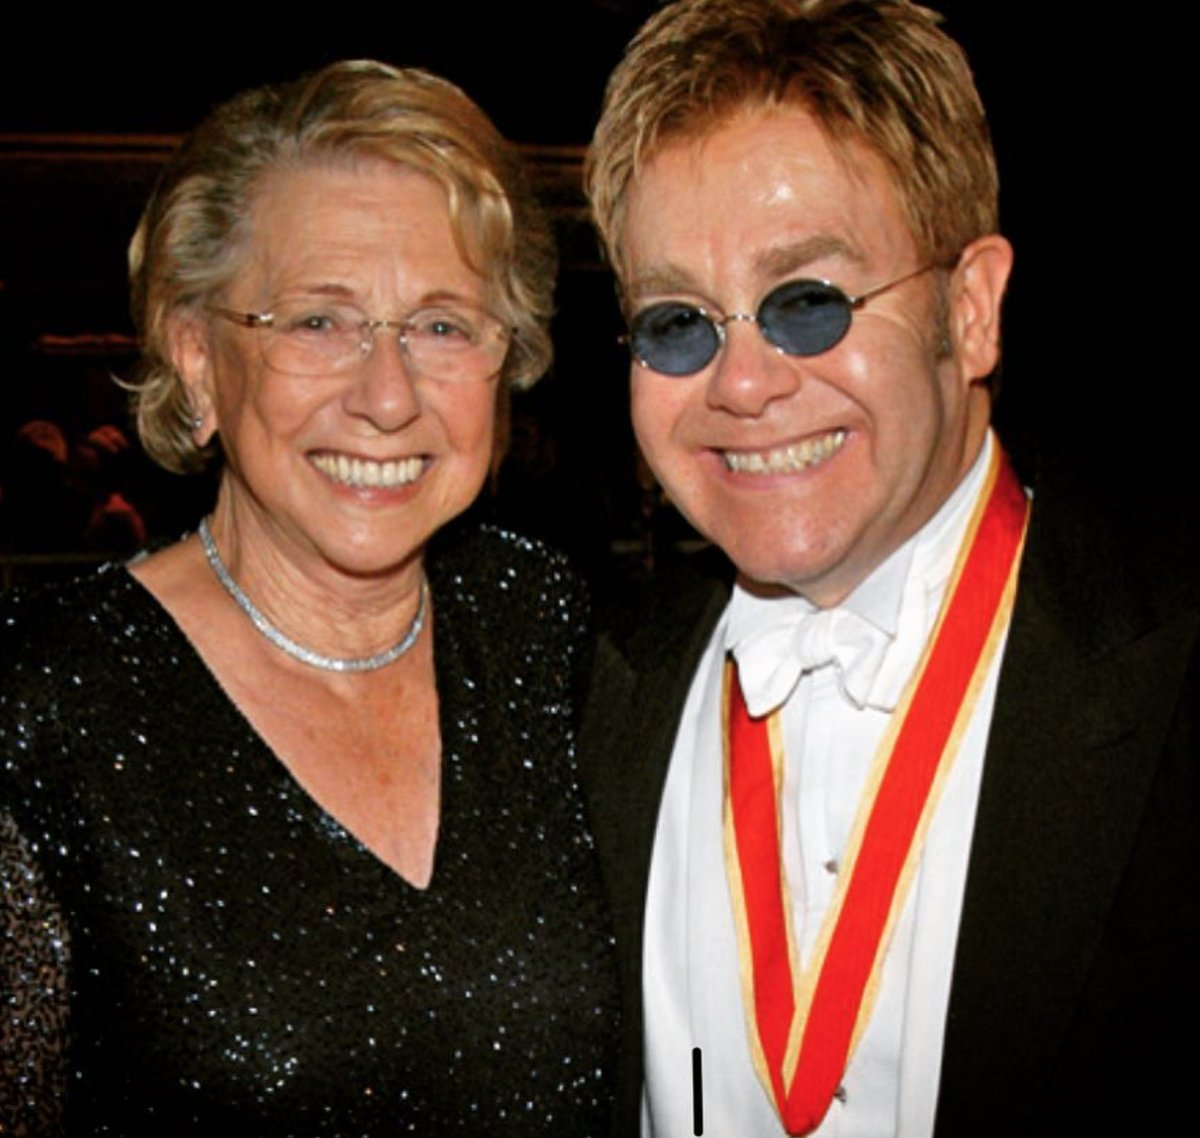 Elton John's mother has died